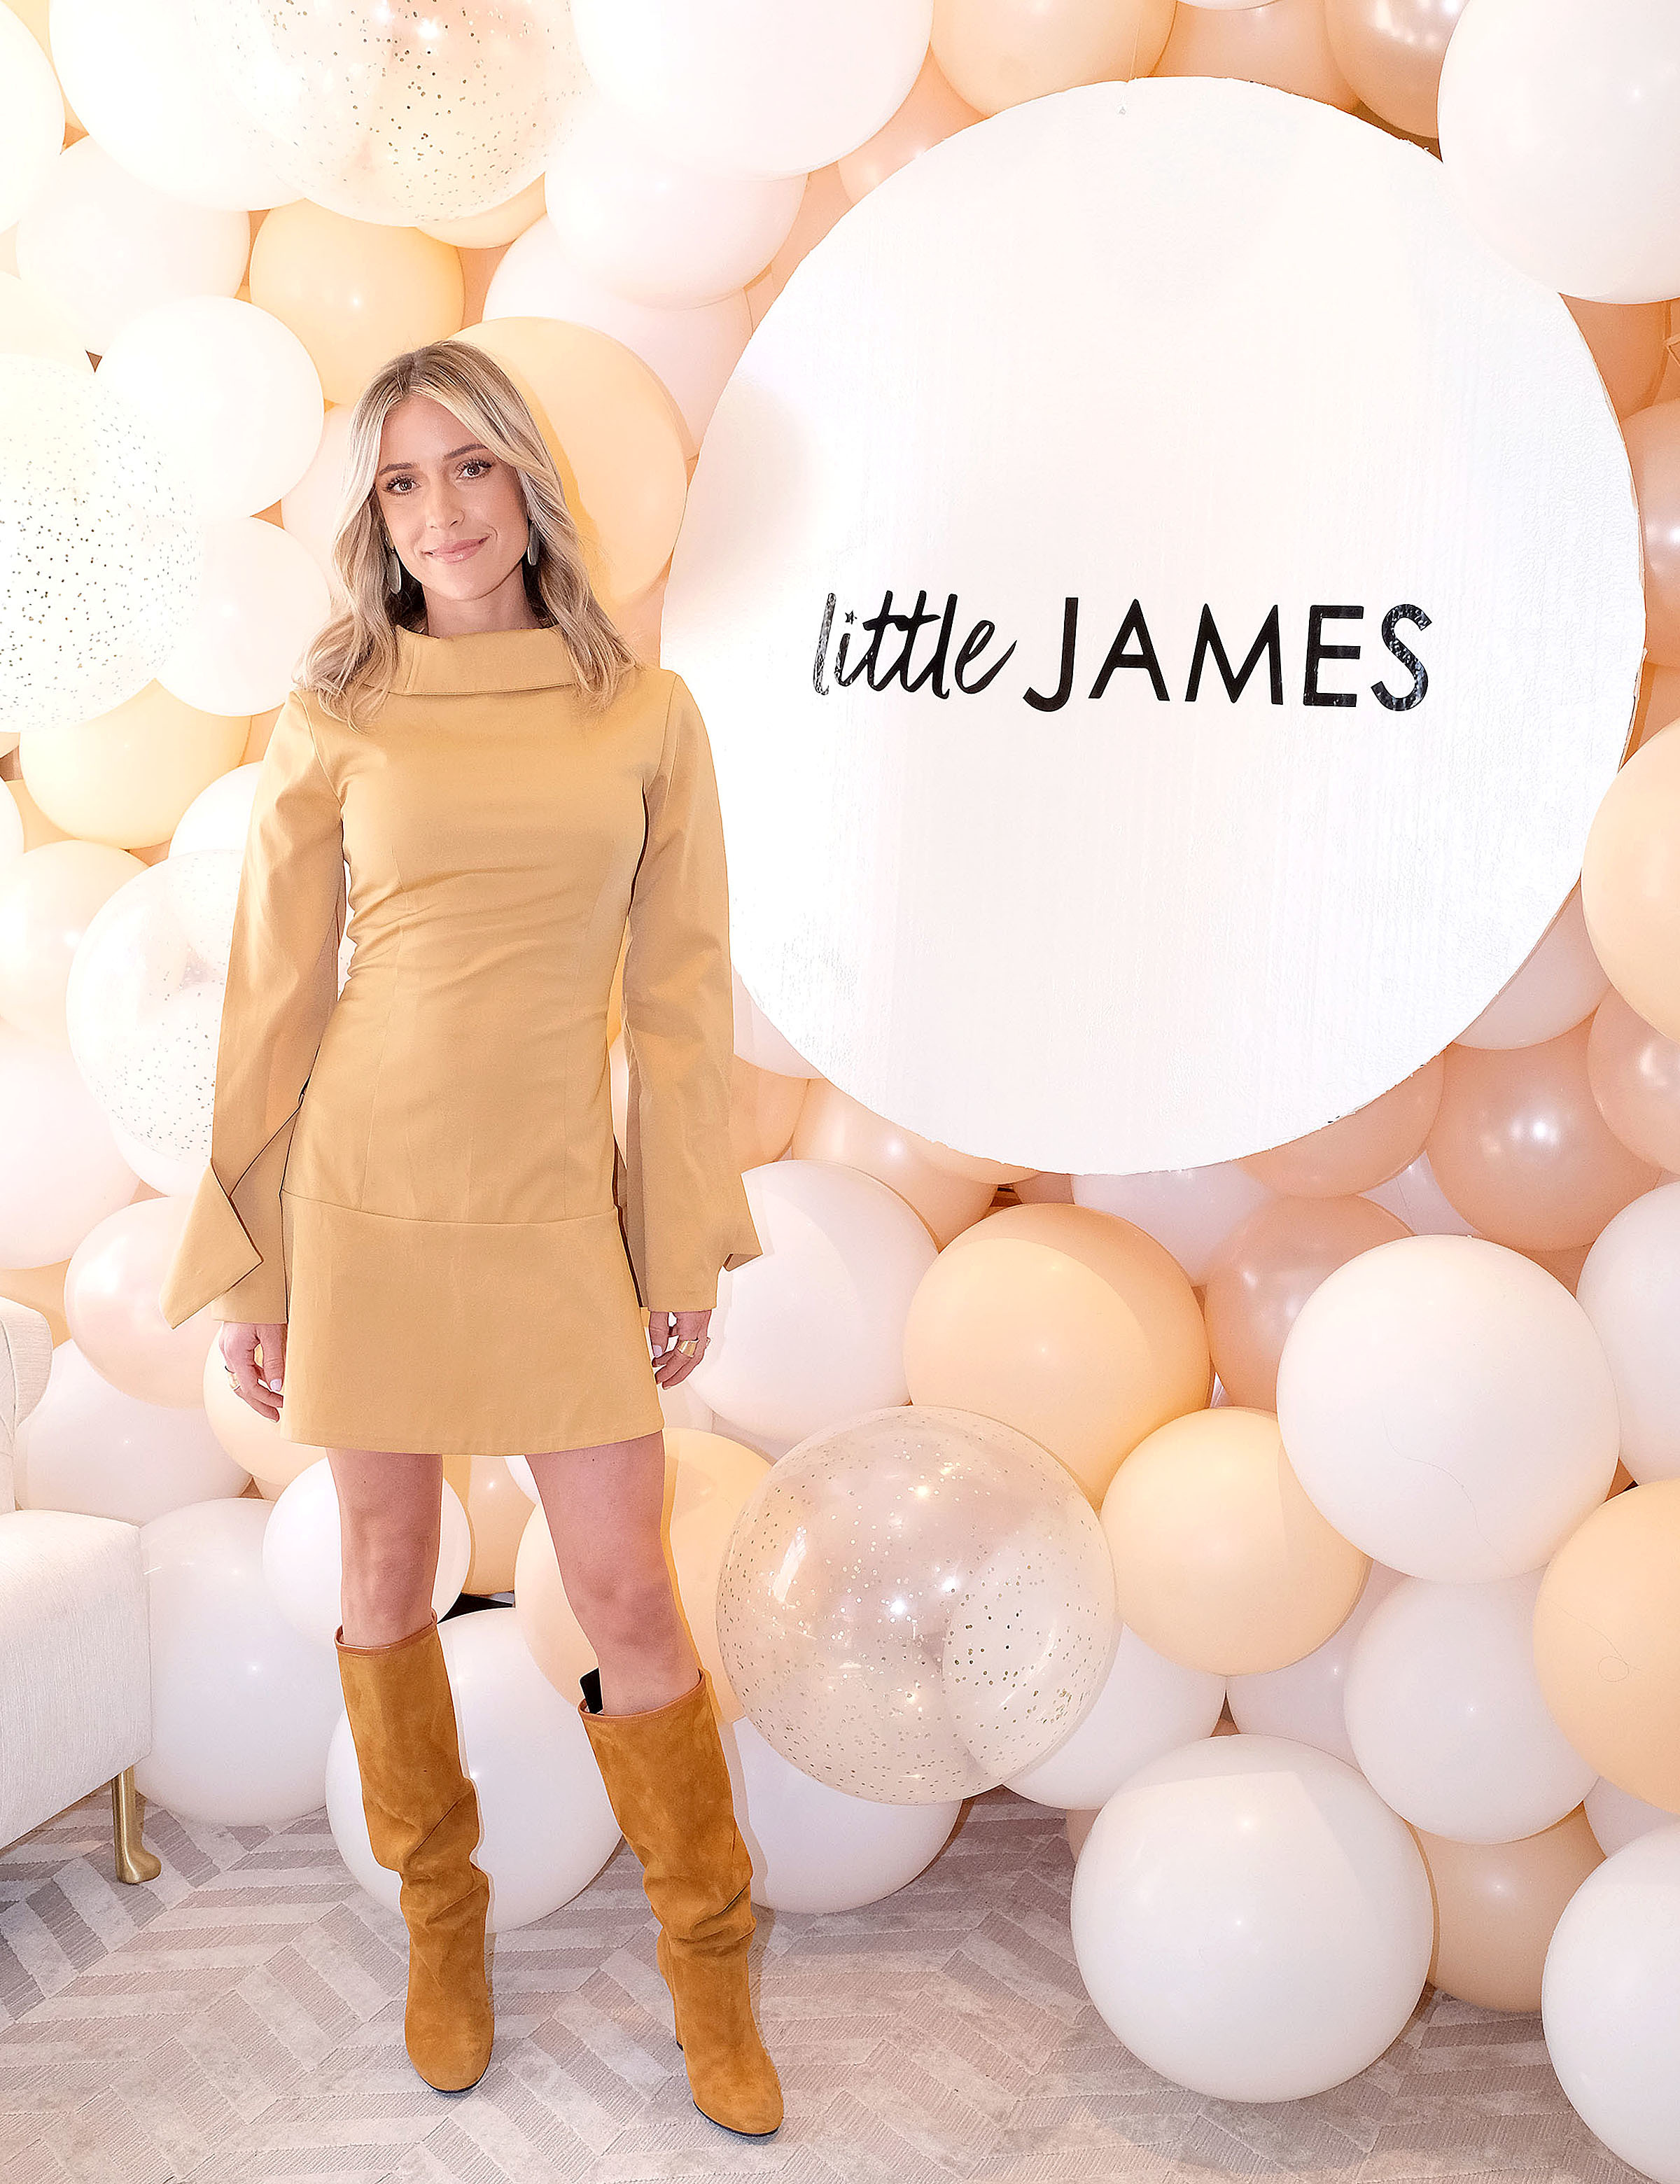 Kristin Cavallari attends the Little James by Kristin Cavallari Pop up Event in Los Angeles on March 16, 2019.